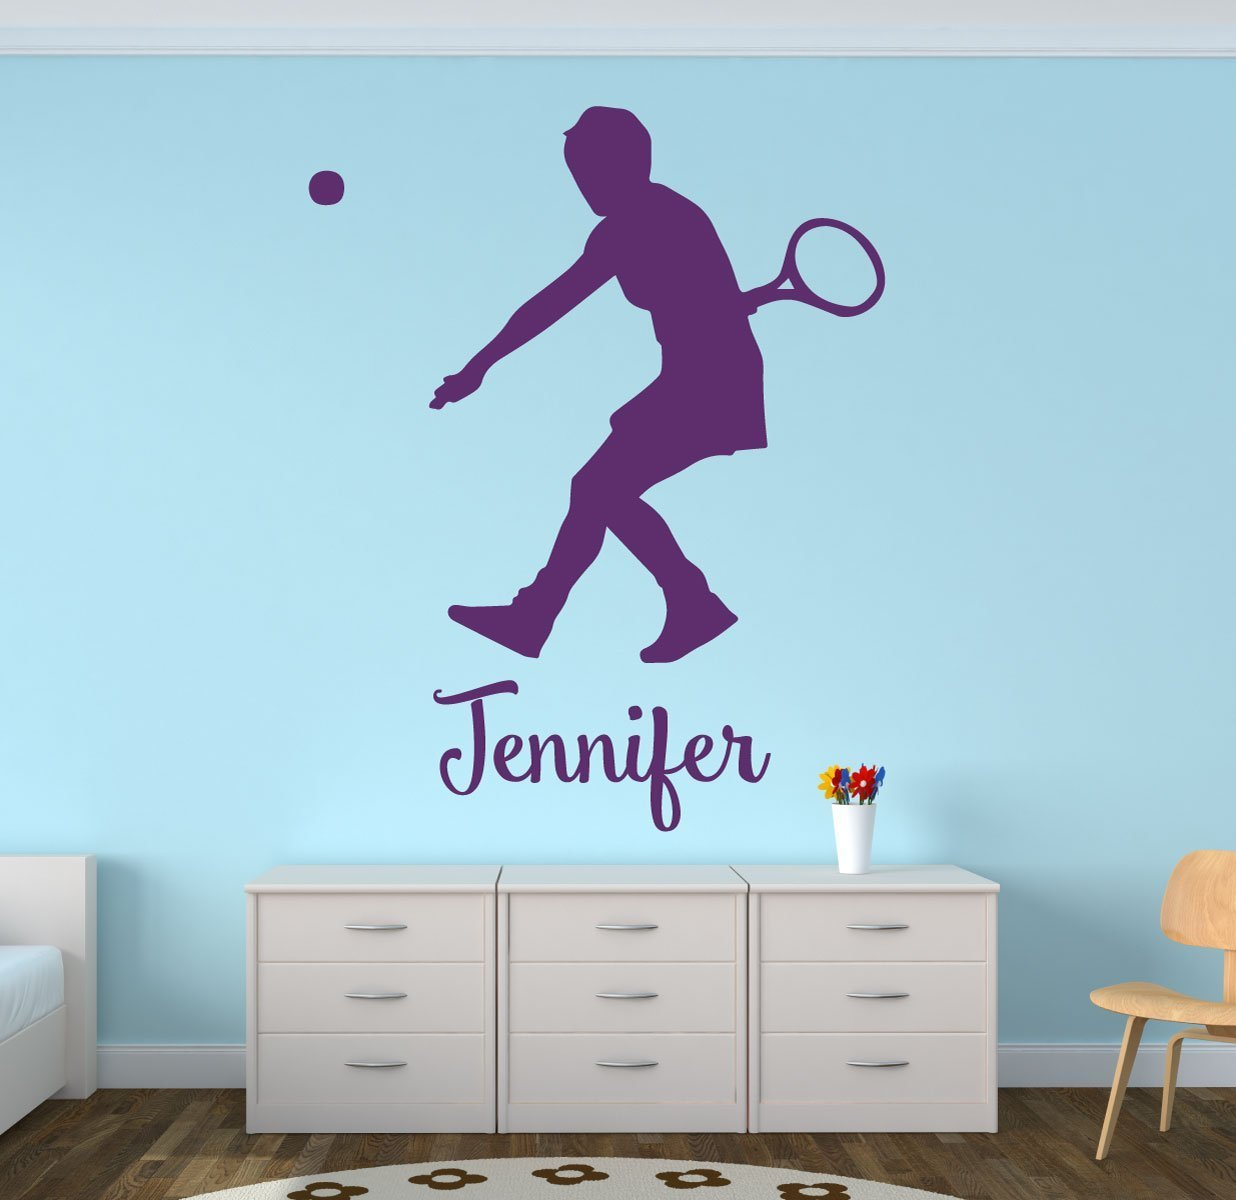 Tennis Wall Decals - Personalized Female Tennis Player (Short Hair)